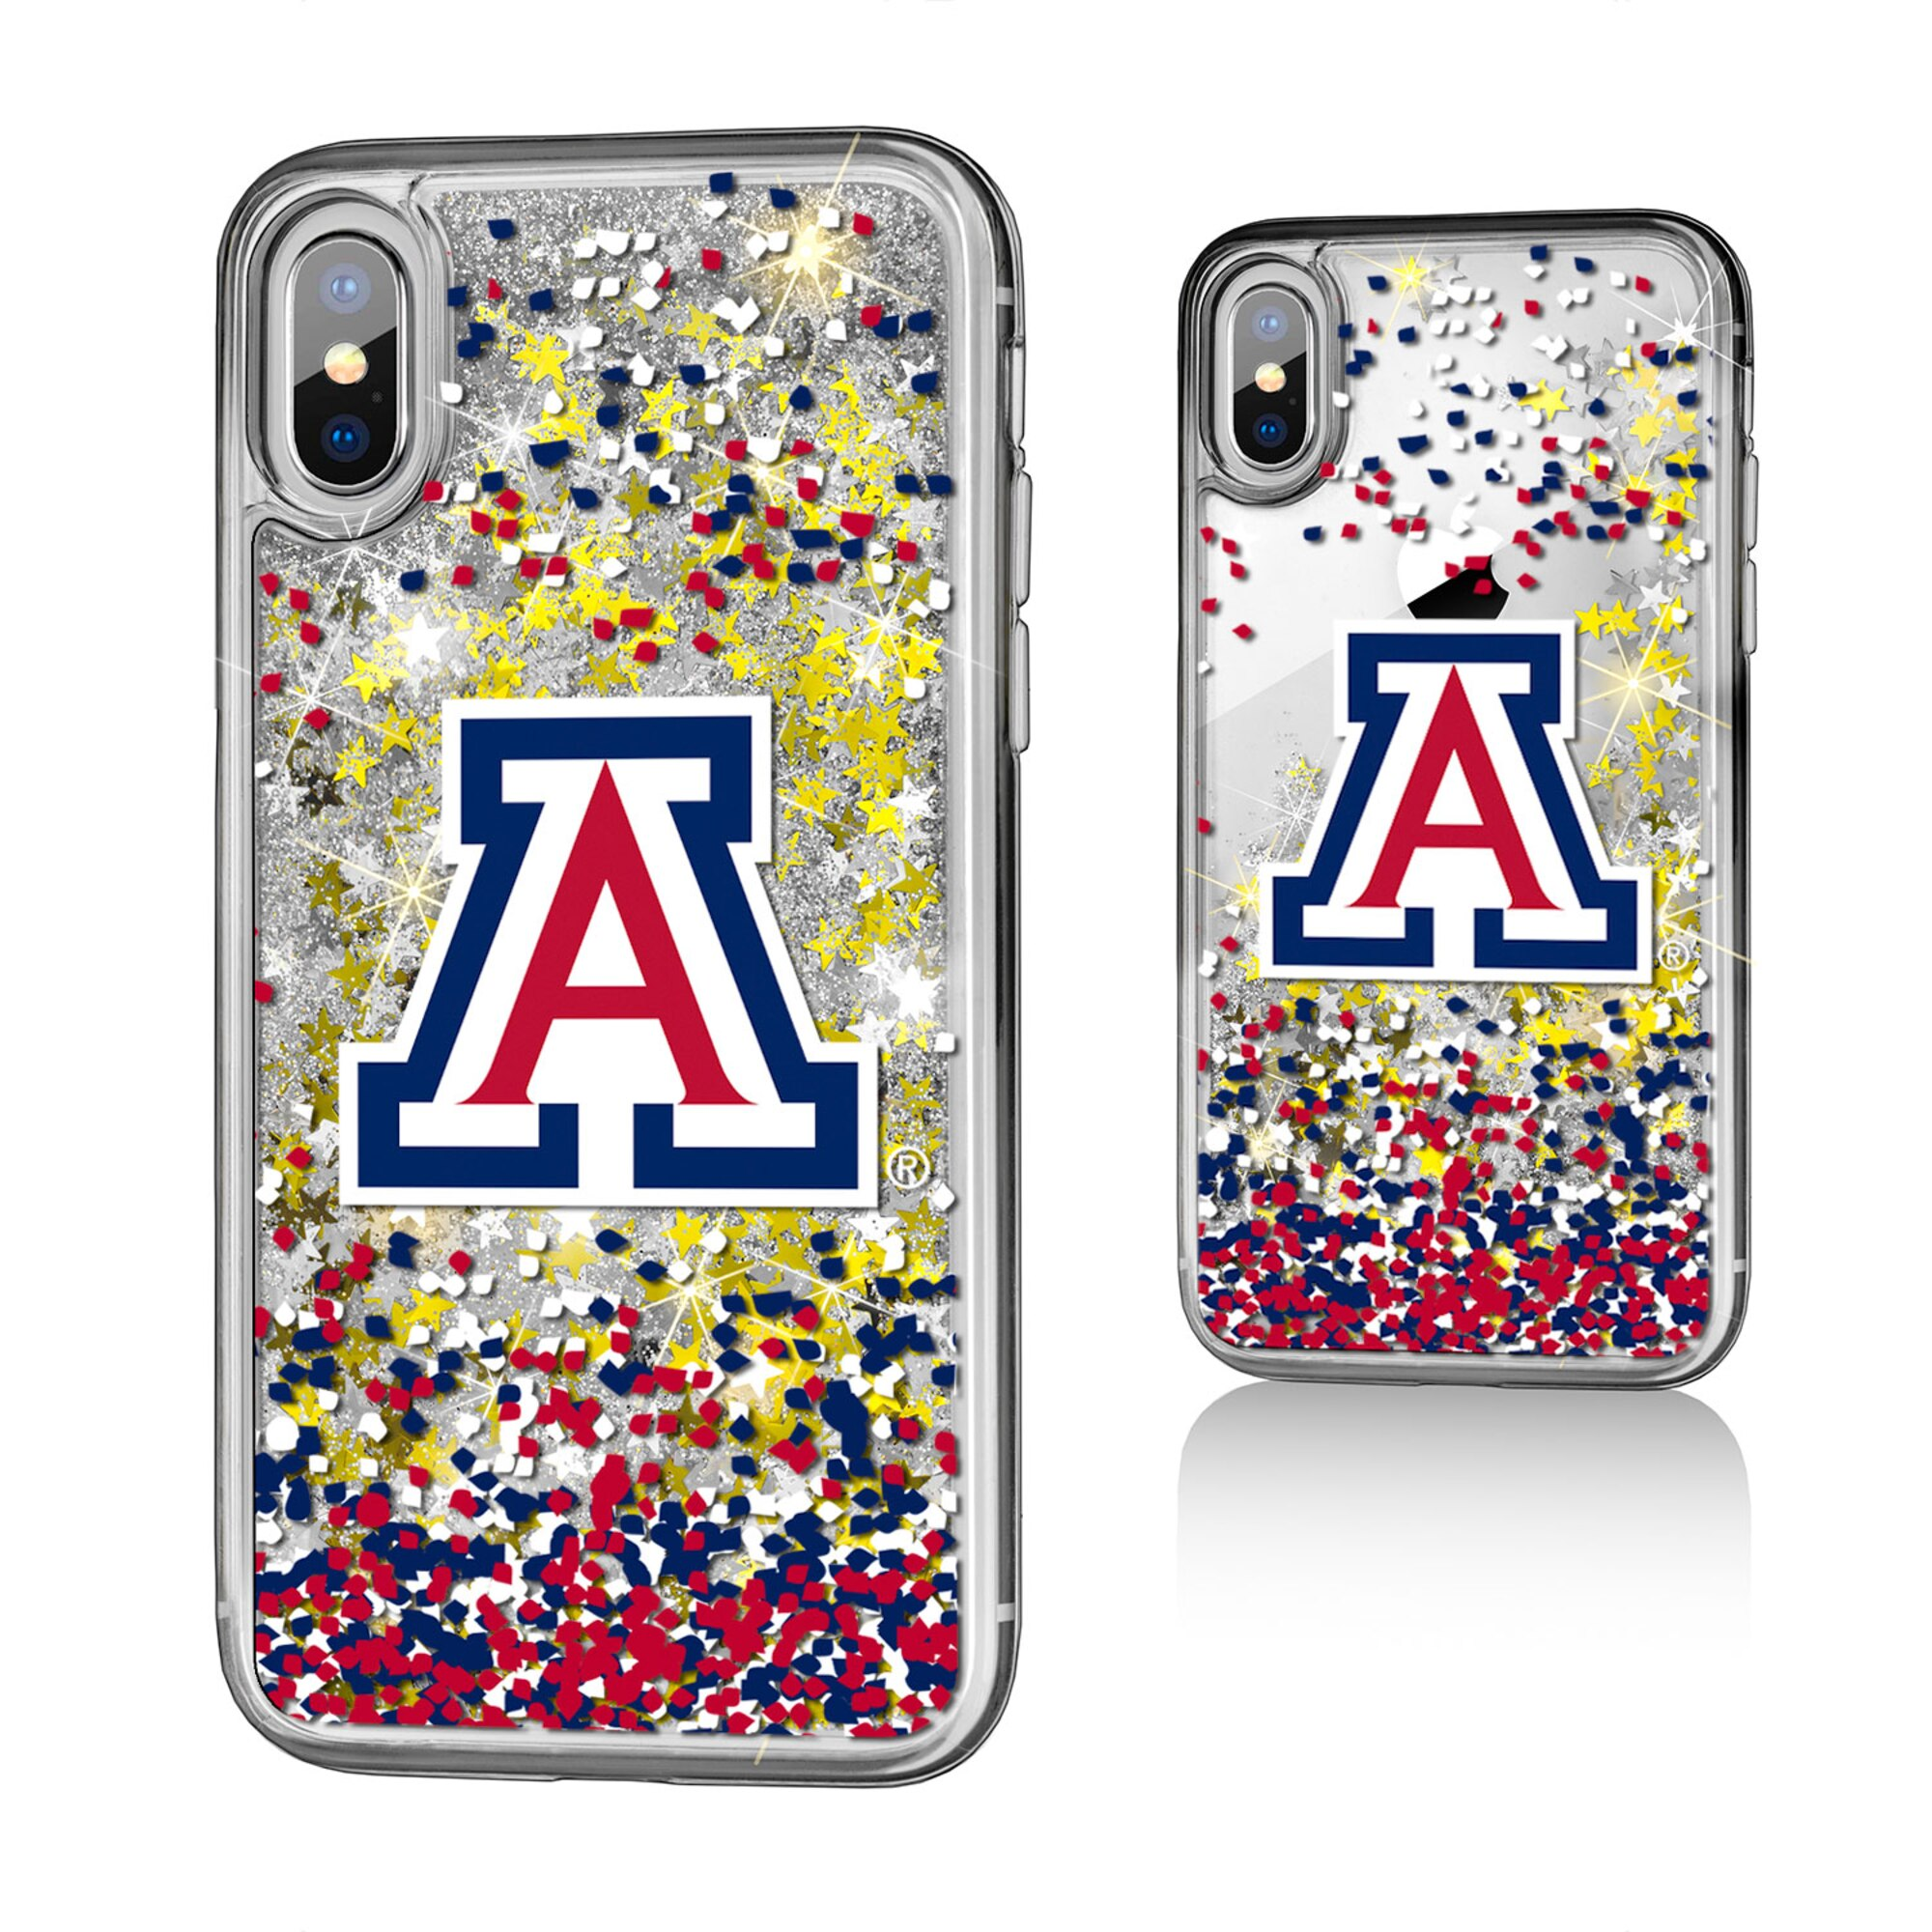 Image For Keyscaper: Arizona iPhone XR Gold Glitter Clear Case